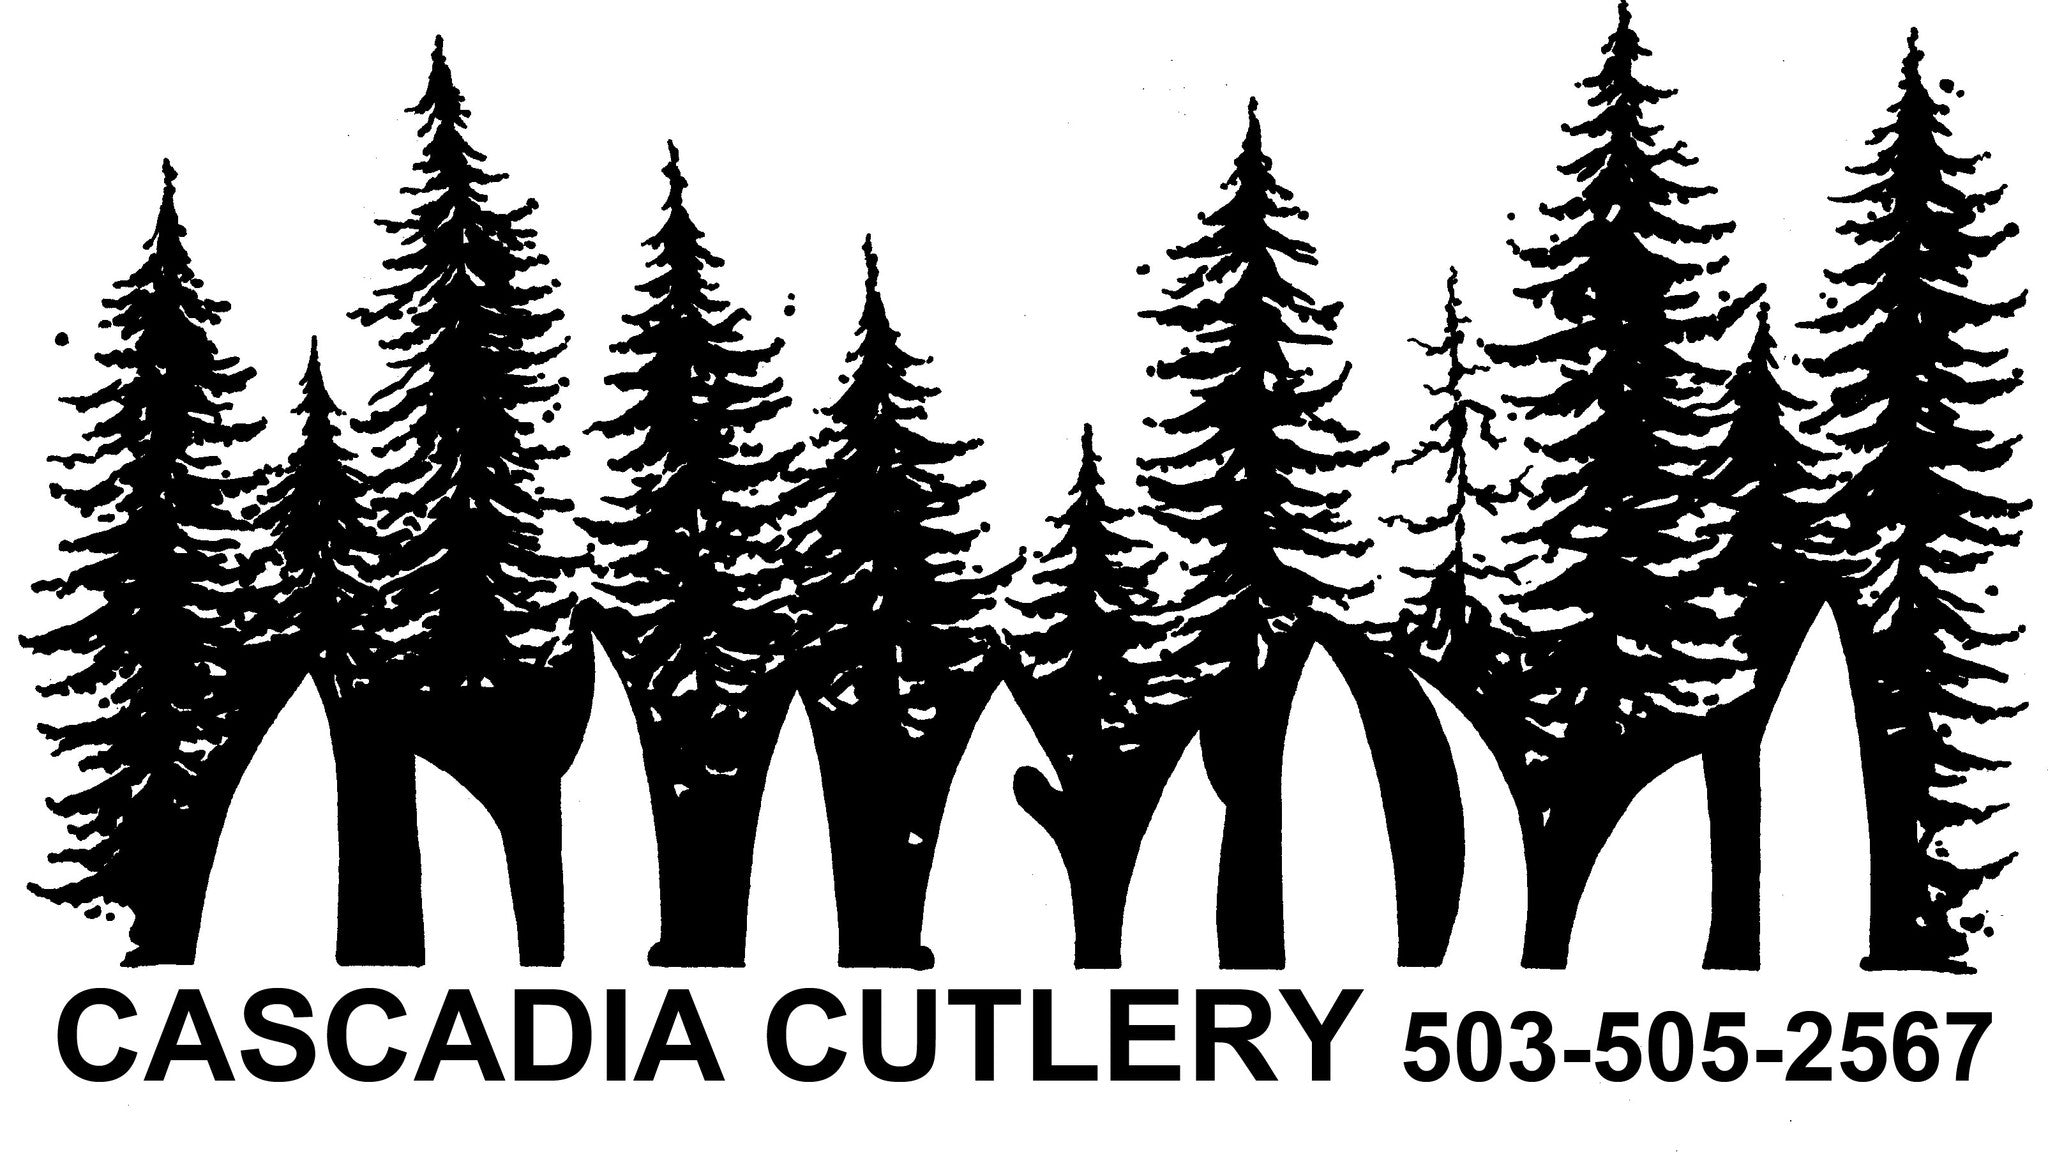 Cascadia Cutlery is a dealer of Premium Blades and Edge Sharpening Services